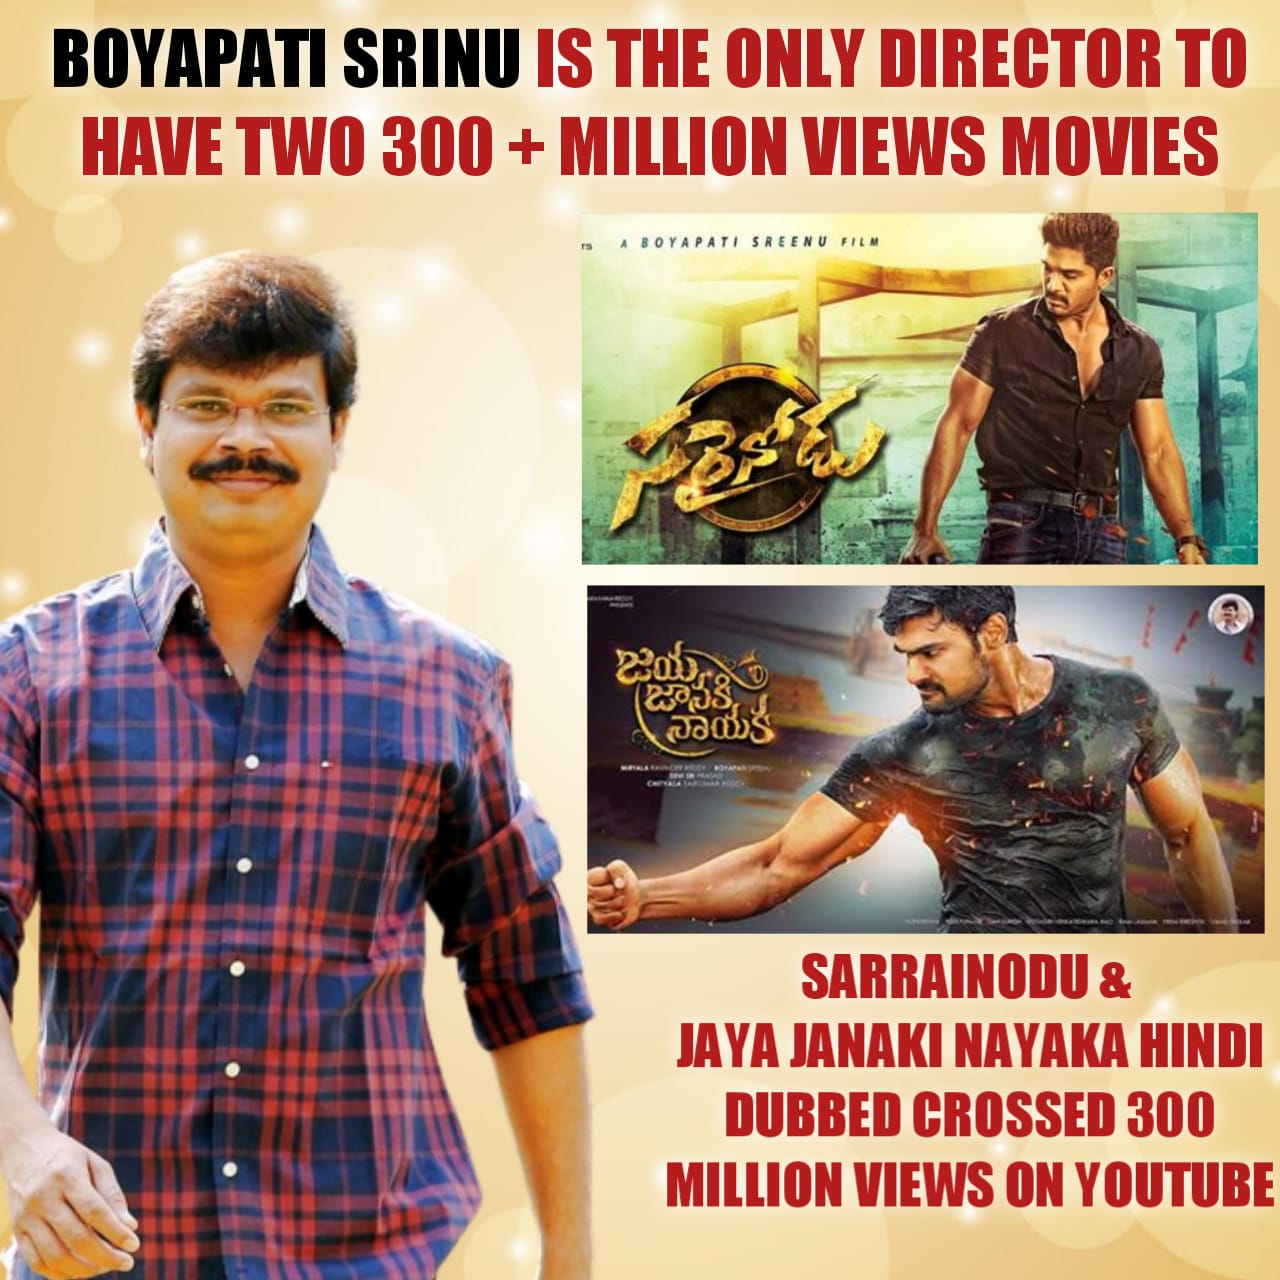 Boyapati Srinu Only Director To Have A Record Of 300 Million Views For His Two Films Sarrainodu And Jaya Janaki Nayaka Dubbed Versions